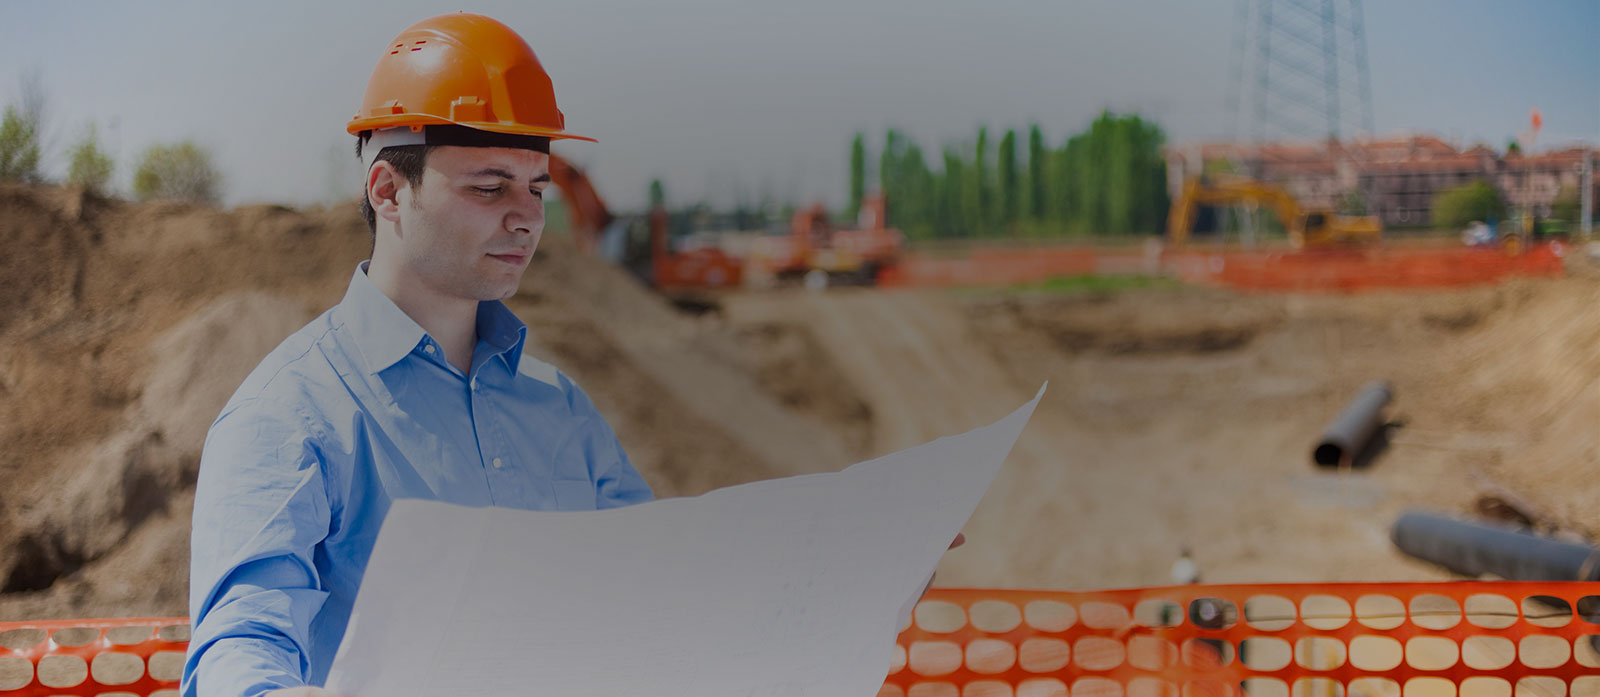 Professional Engineer PDH CE renewal package